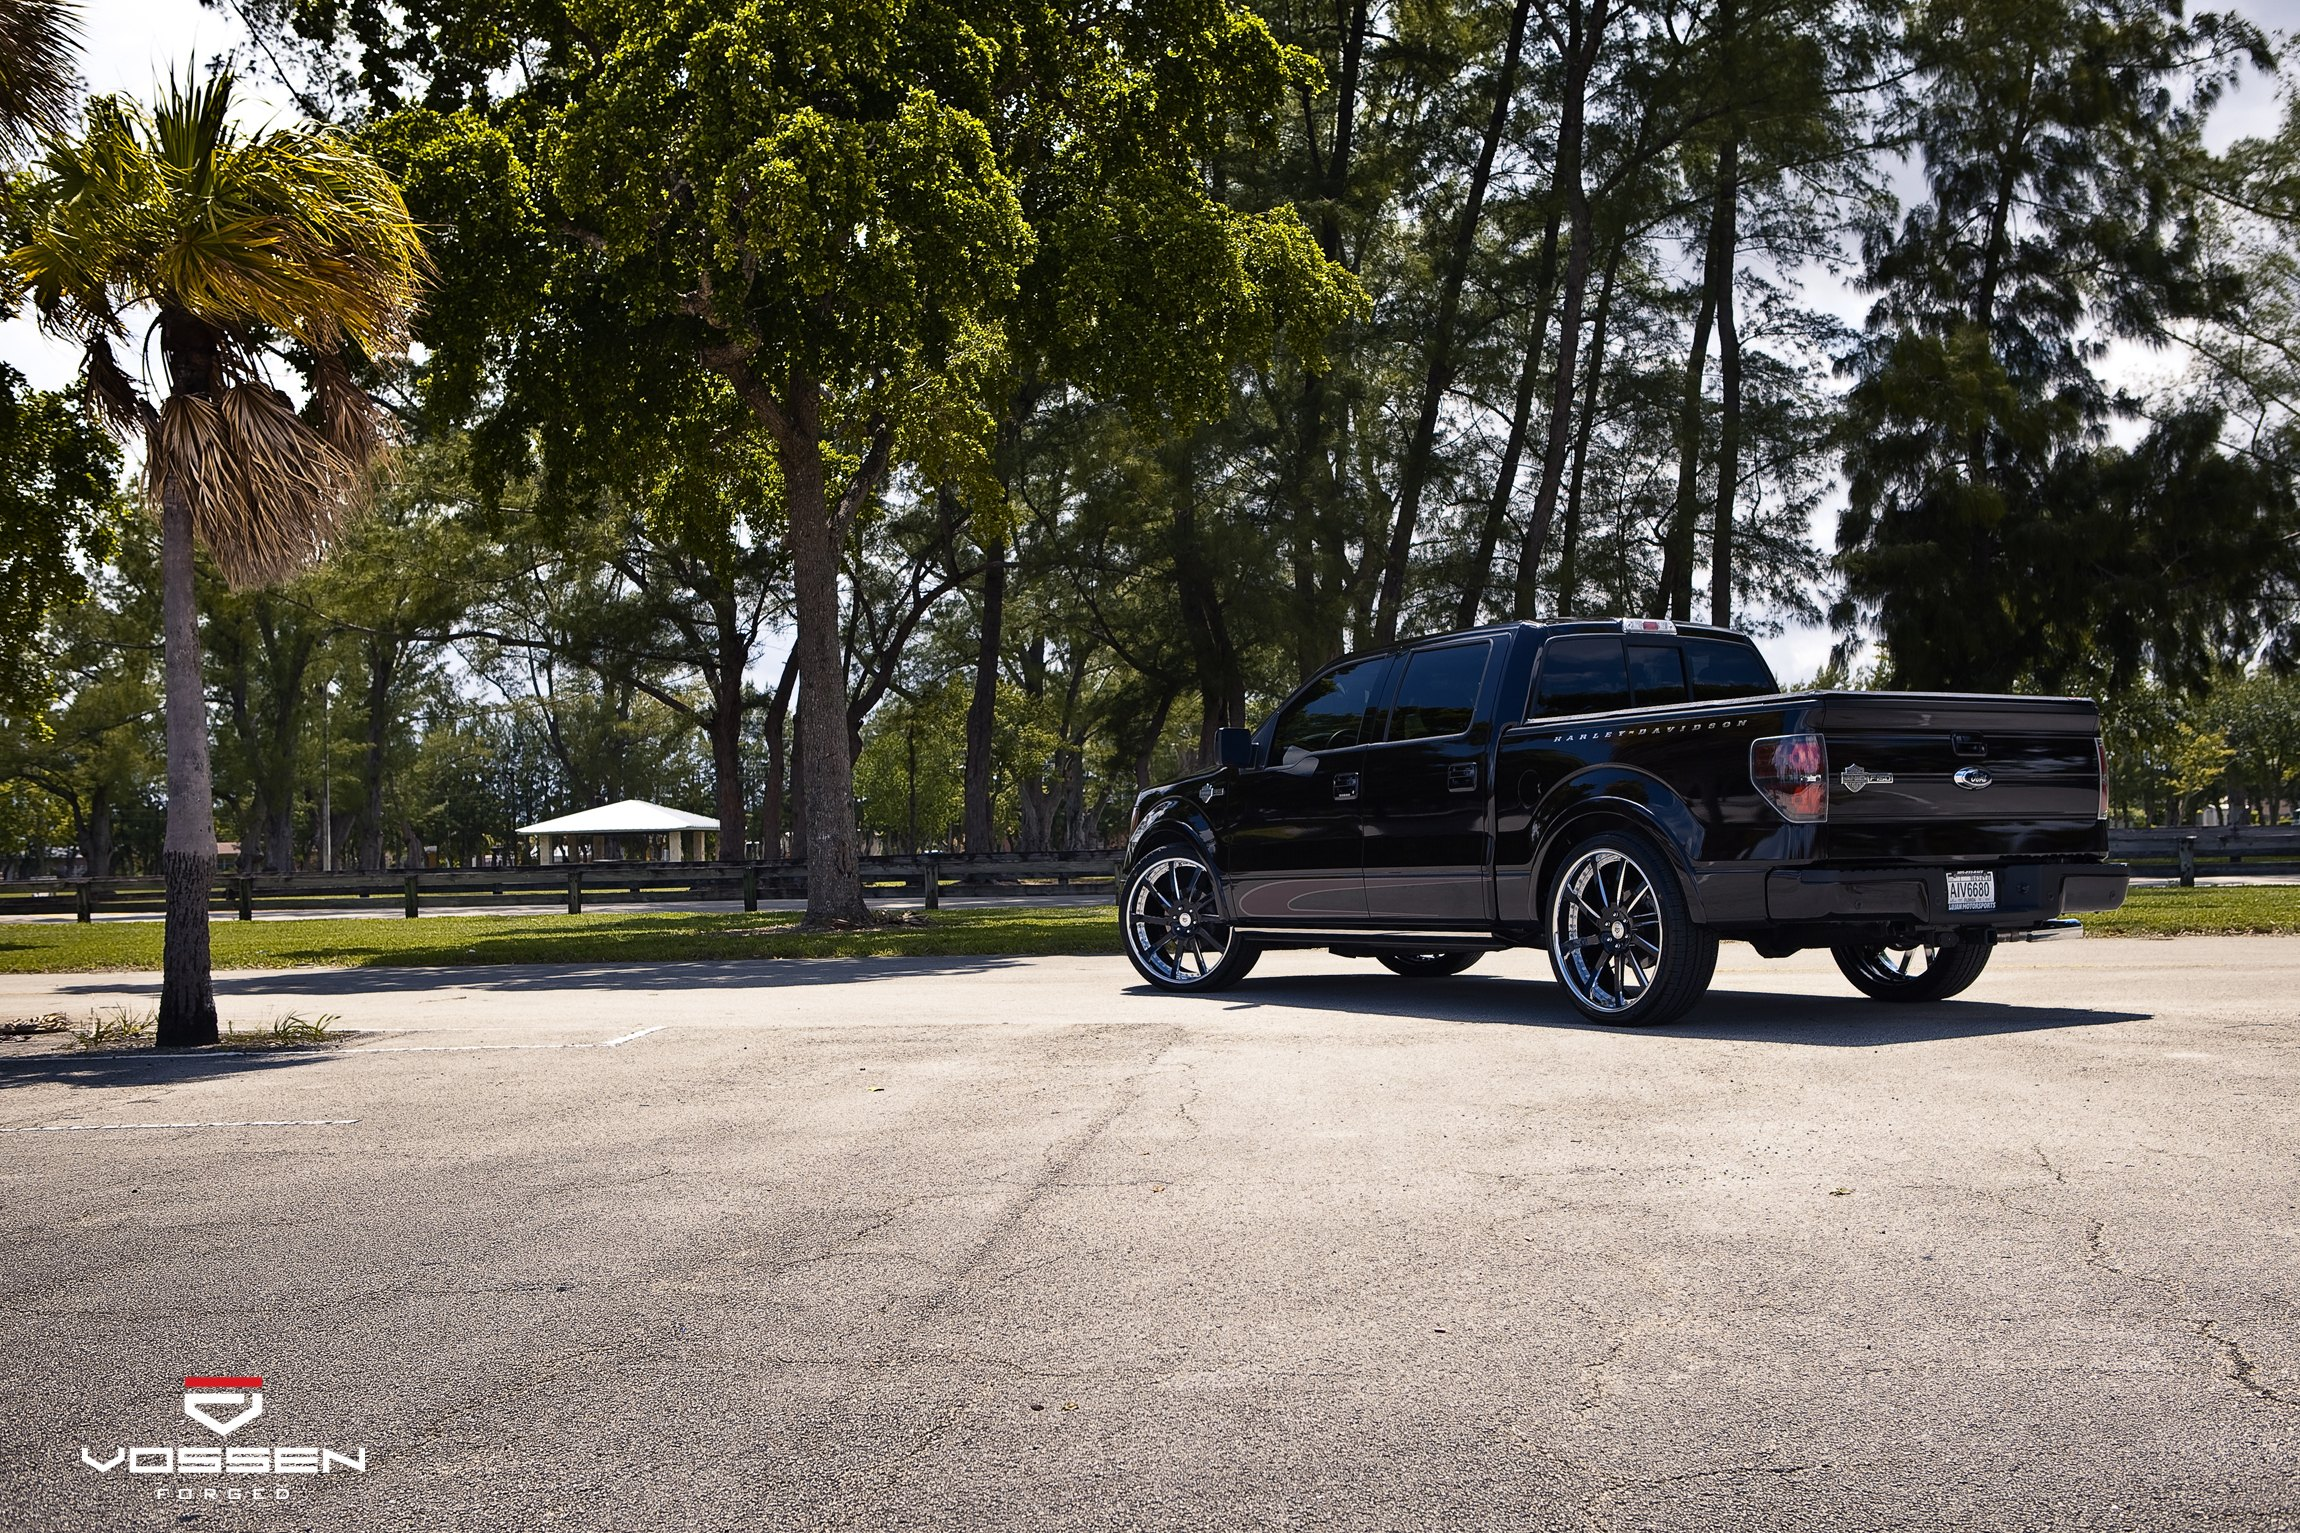 Black Ford F-150 with Custom Red LED Taillights - Photo by Vossen